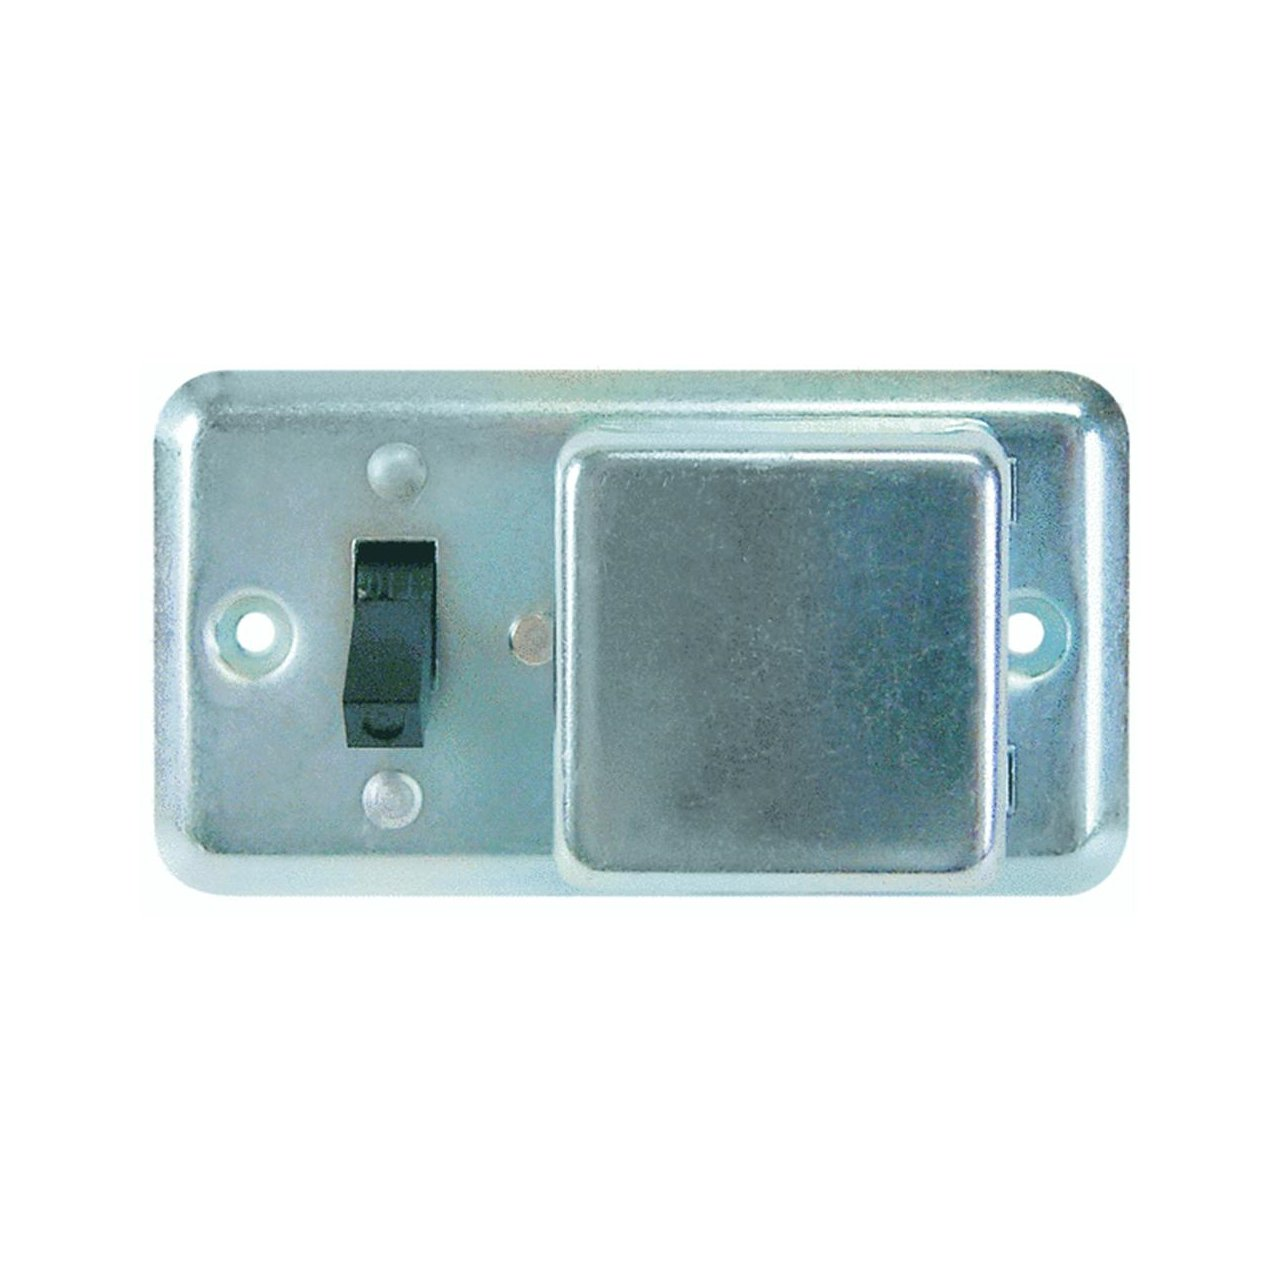 61PCXY2YSuL._SL1280_ cooper bp ssu bussman switch & fuse holder automotive fuse 80 Boat Fuse Box at webbmarketing.co